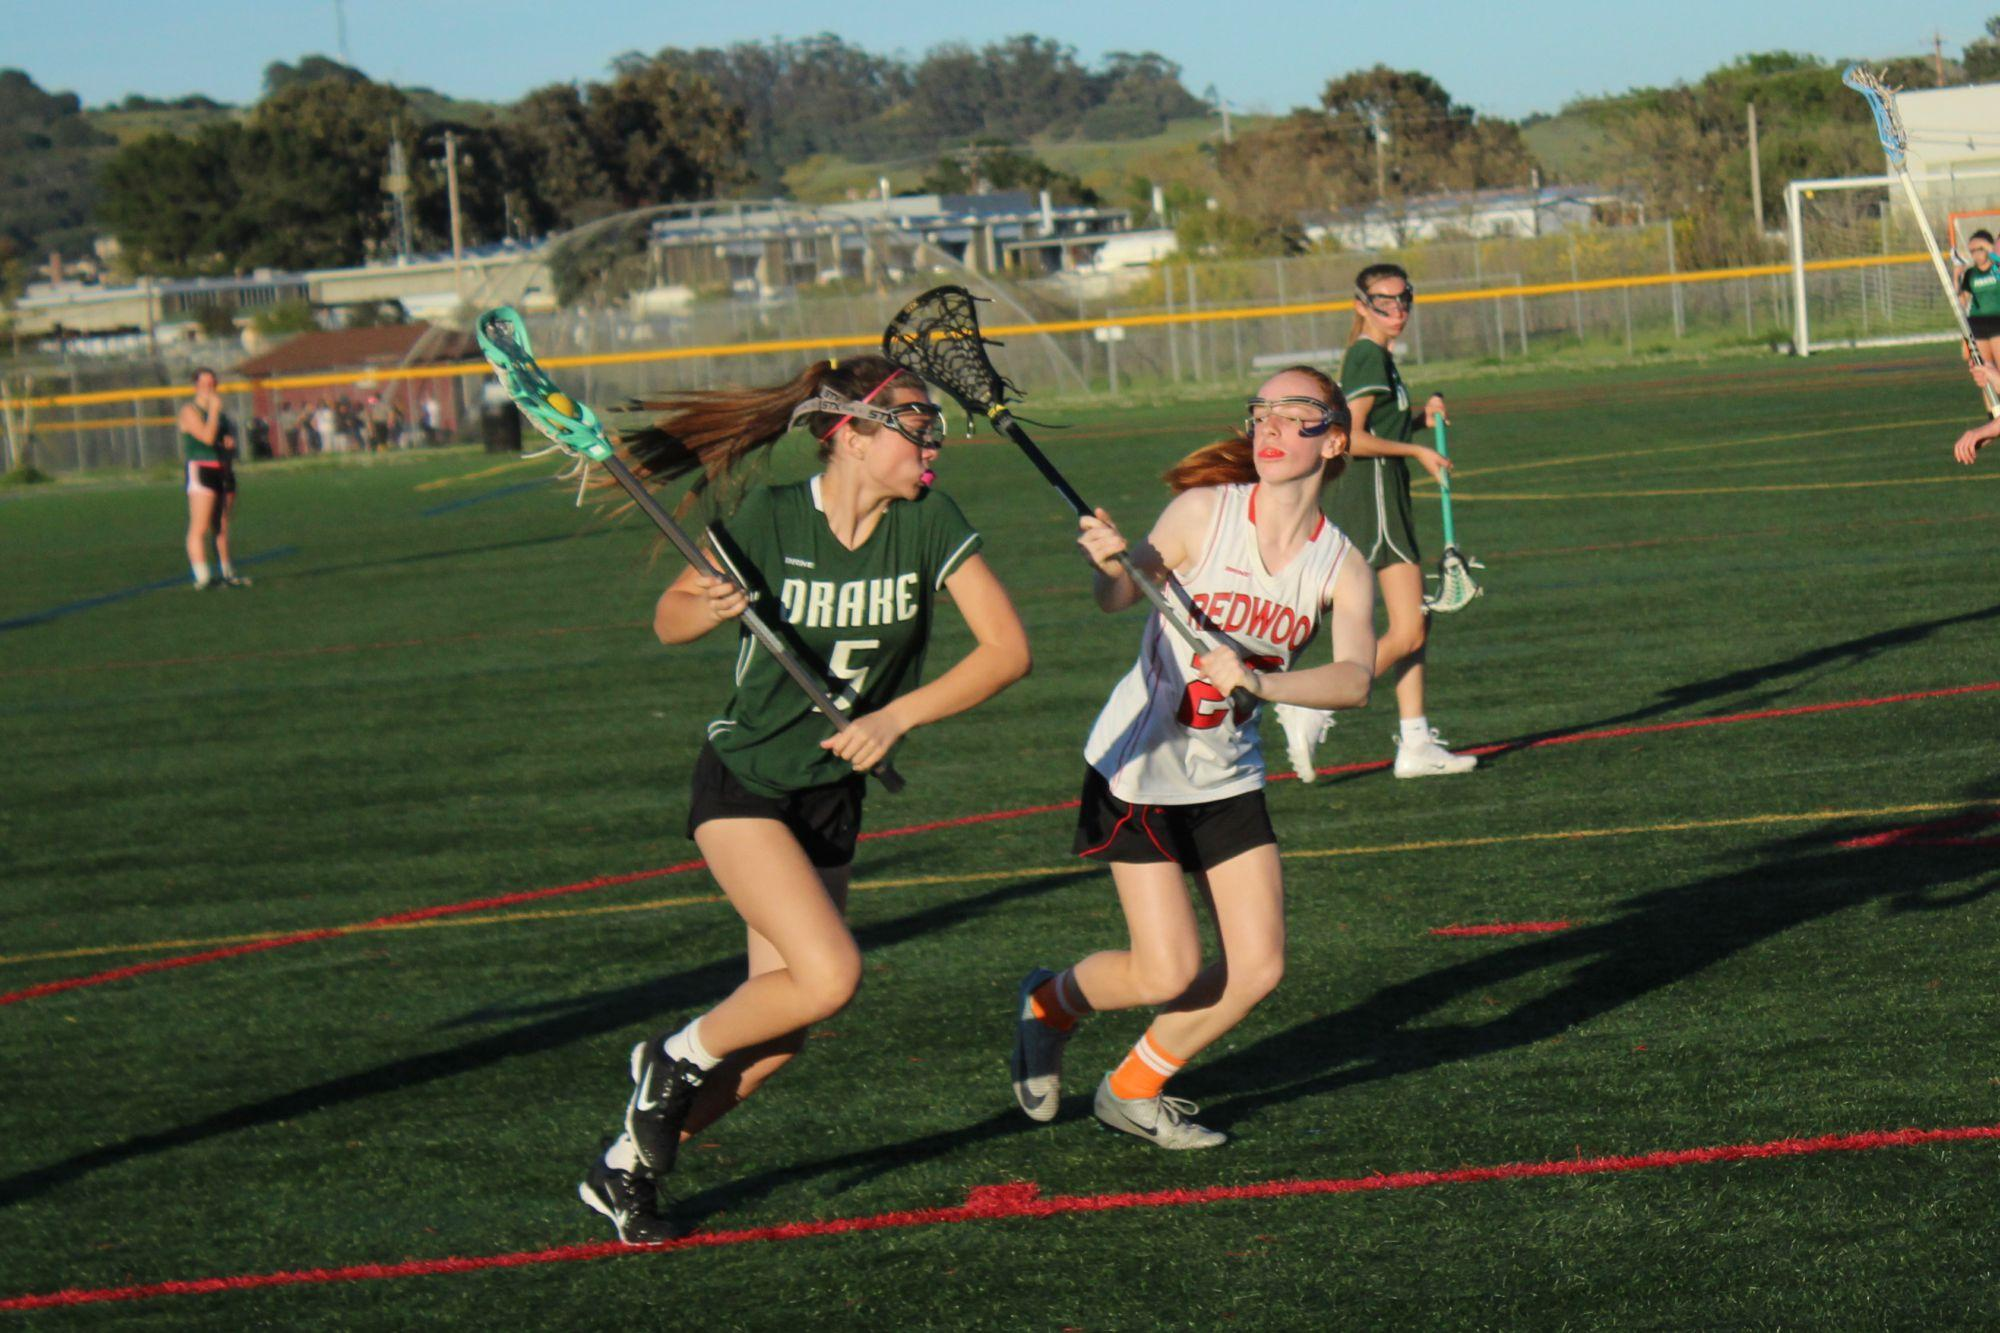 Girls' JV lacrosse cruises past Drake after tough loss